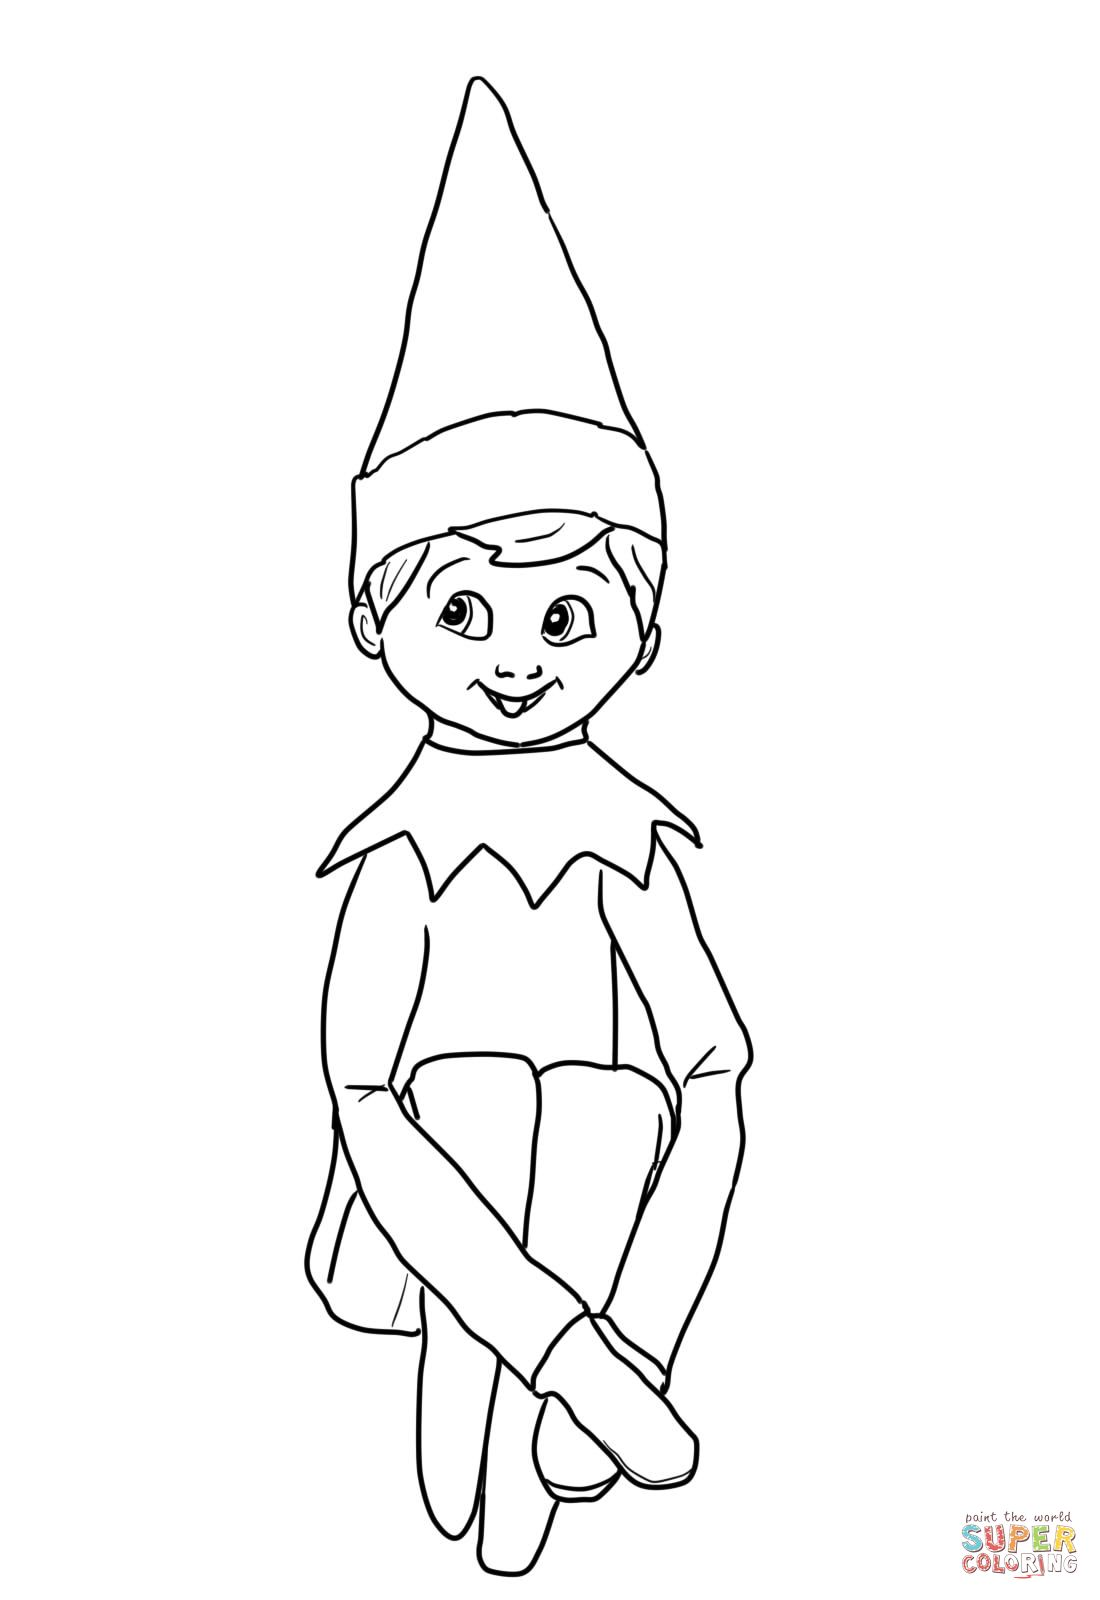 elf on shelf coloring pages Girl Elf On the Shelf Coloring Pages | You might also be  elf on shelf coloring pages